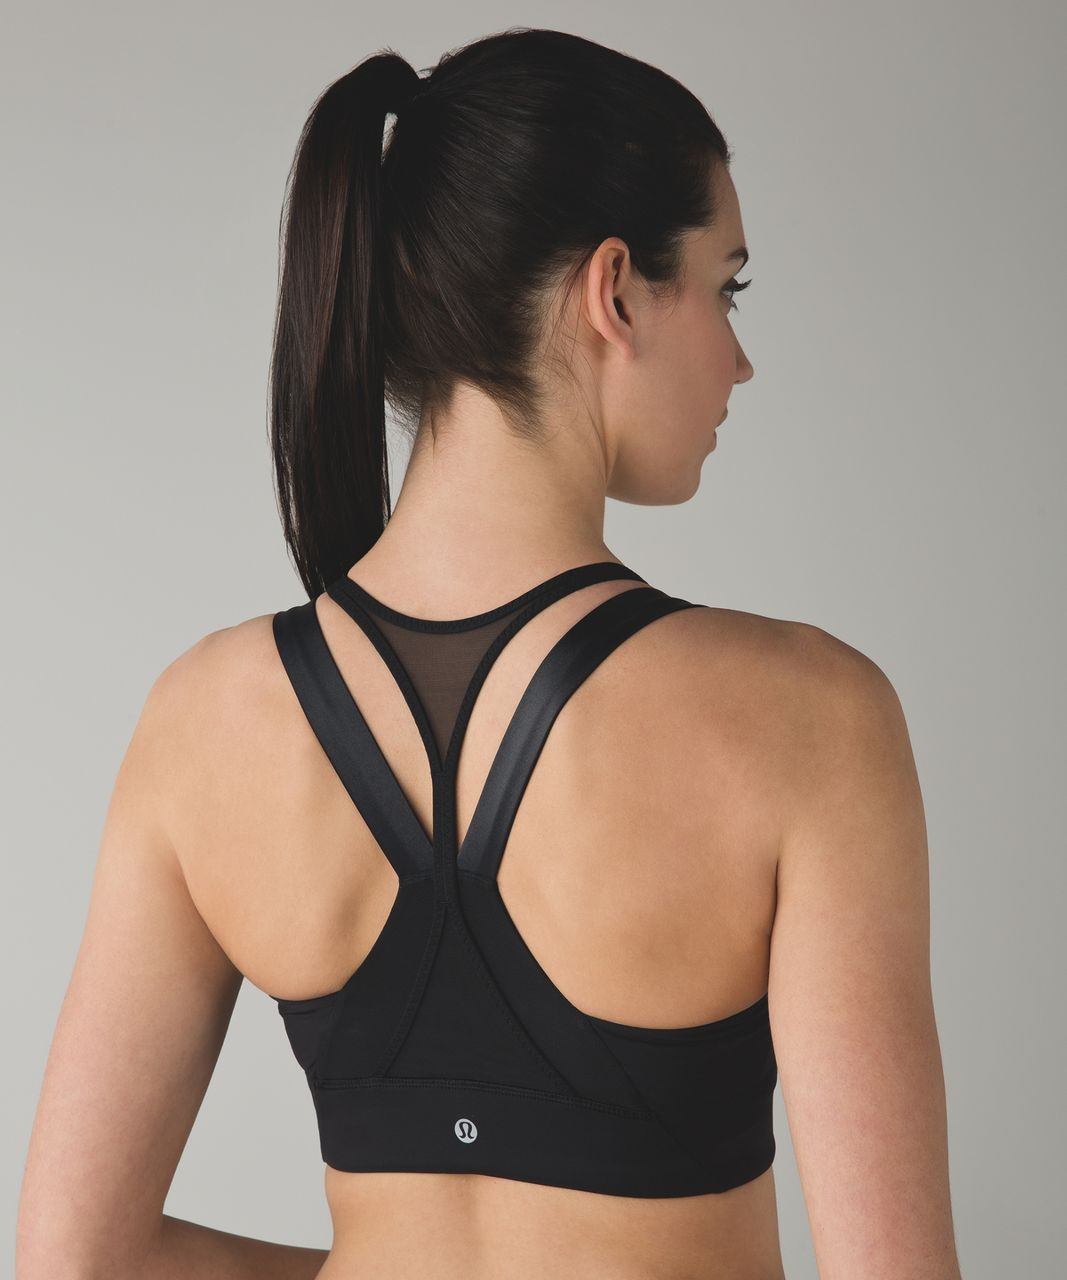 Lululemon Ready, Set, Sweat Bra - Black